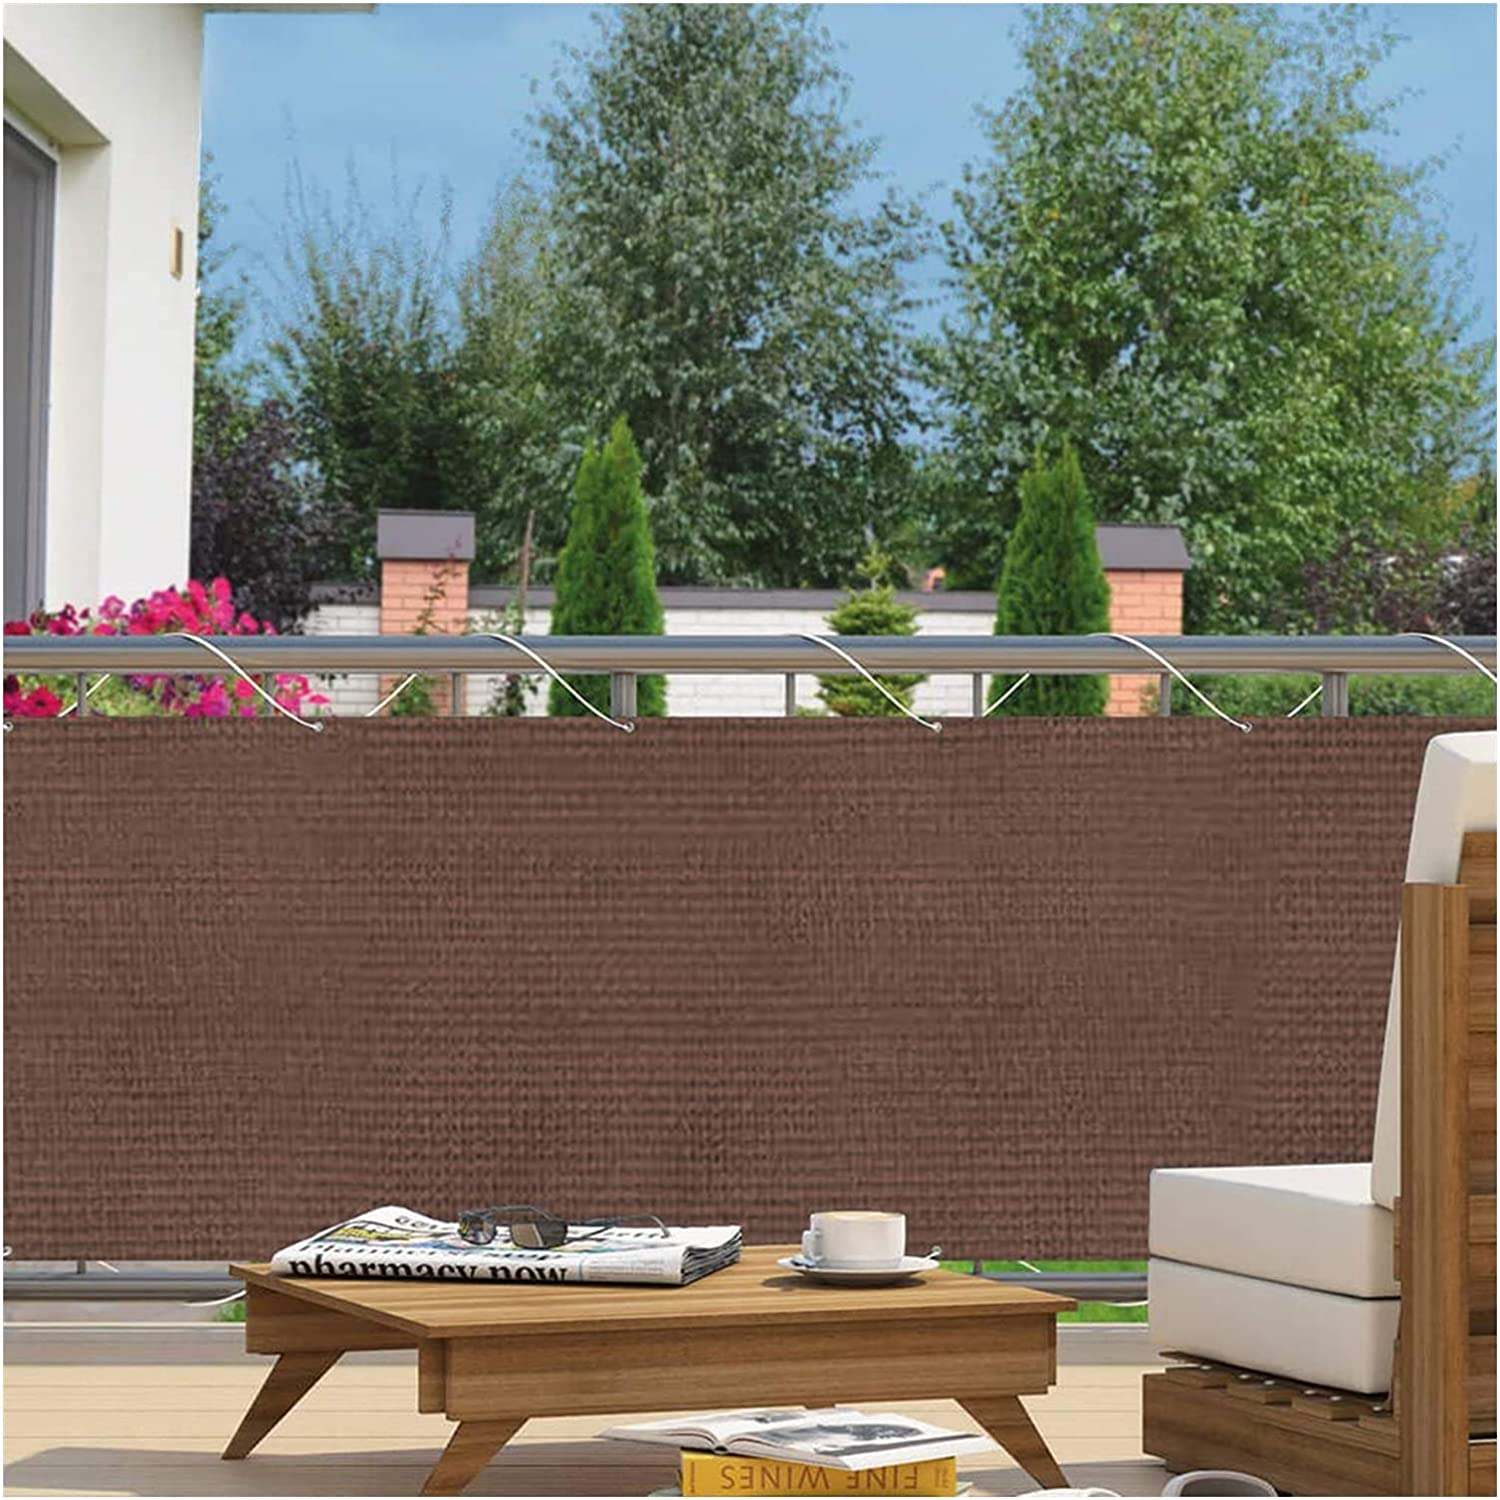 Pillows-RJF Balcony Privacy Screen,HDPE Tarp Dallas Mall Clearance SALE! Limited time! Windscreen Shade